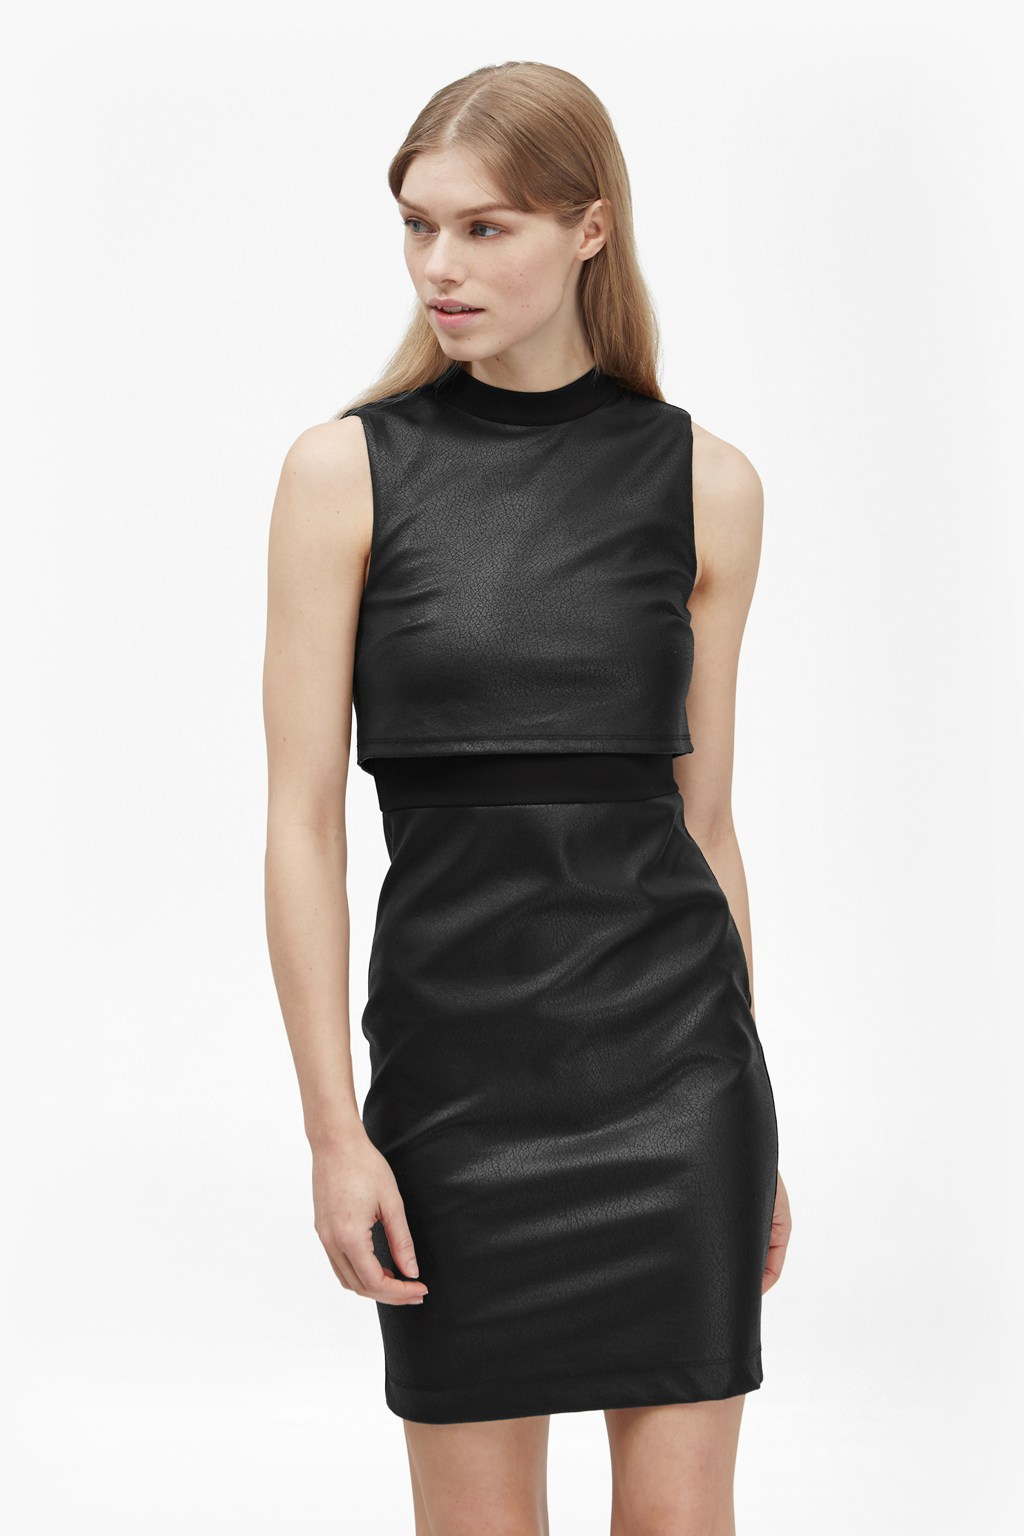 Black dress jersey - Cracked Earth Layered Jersey Dress Loading Images